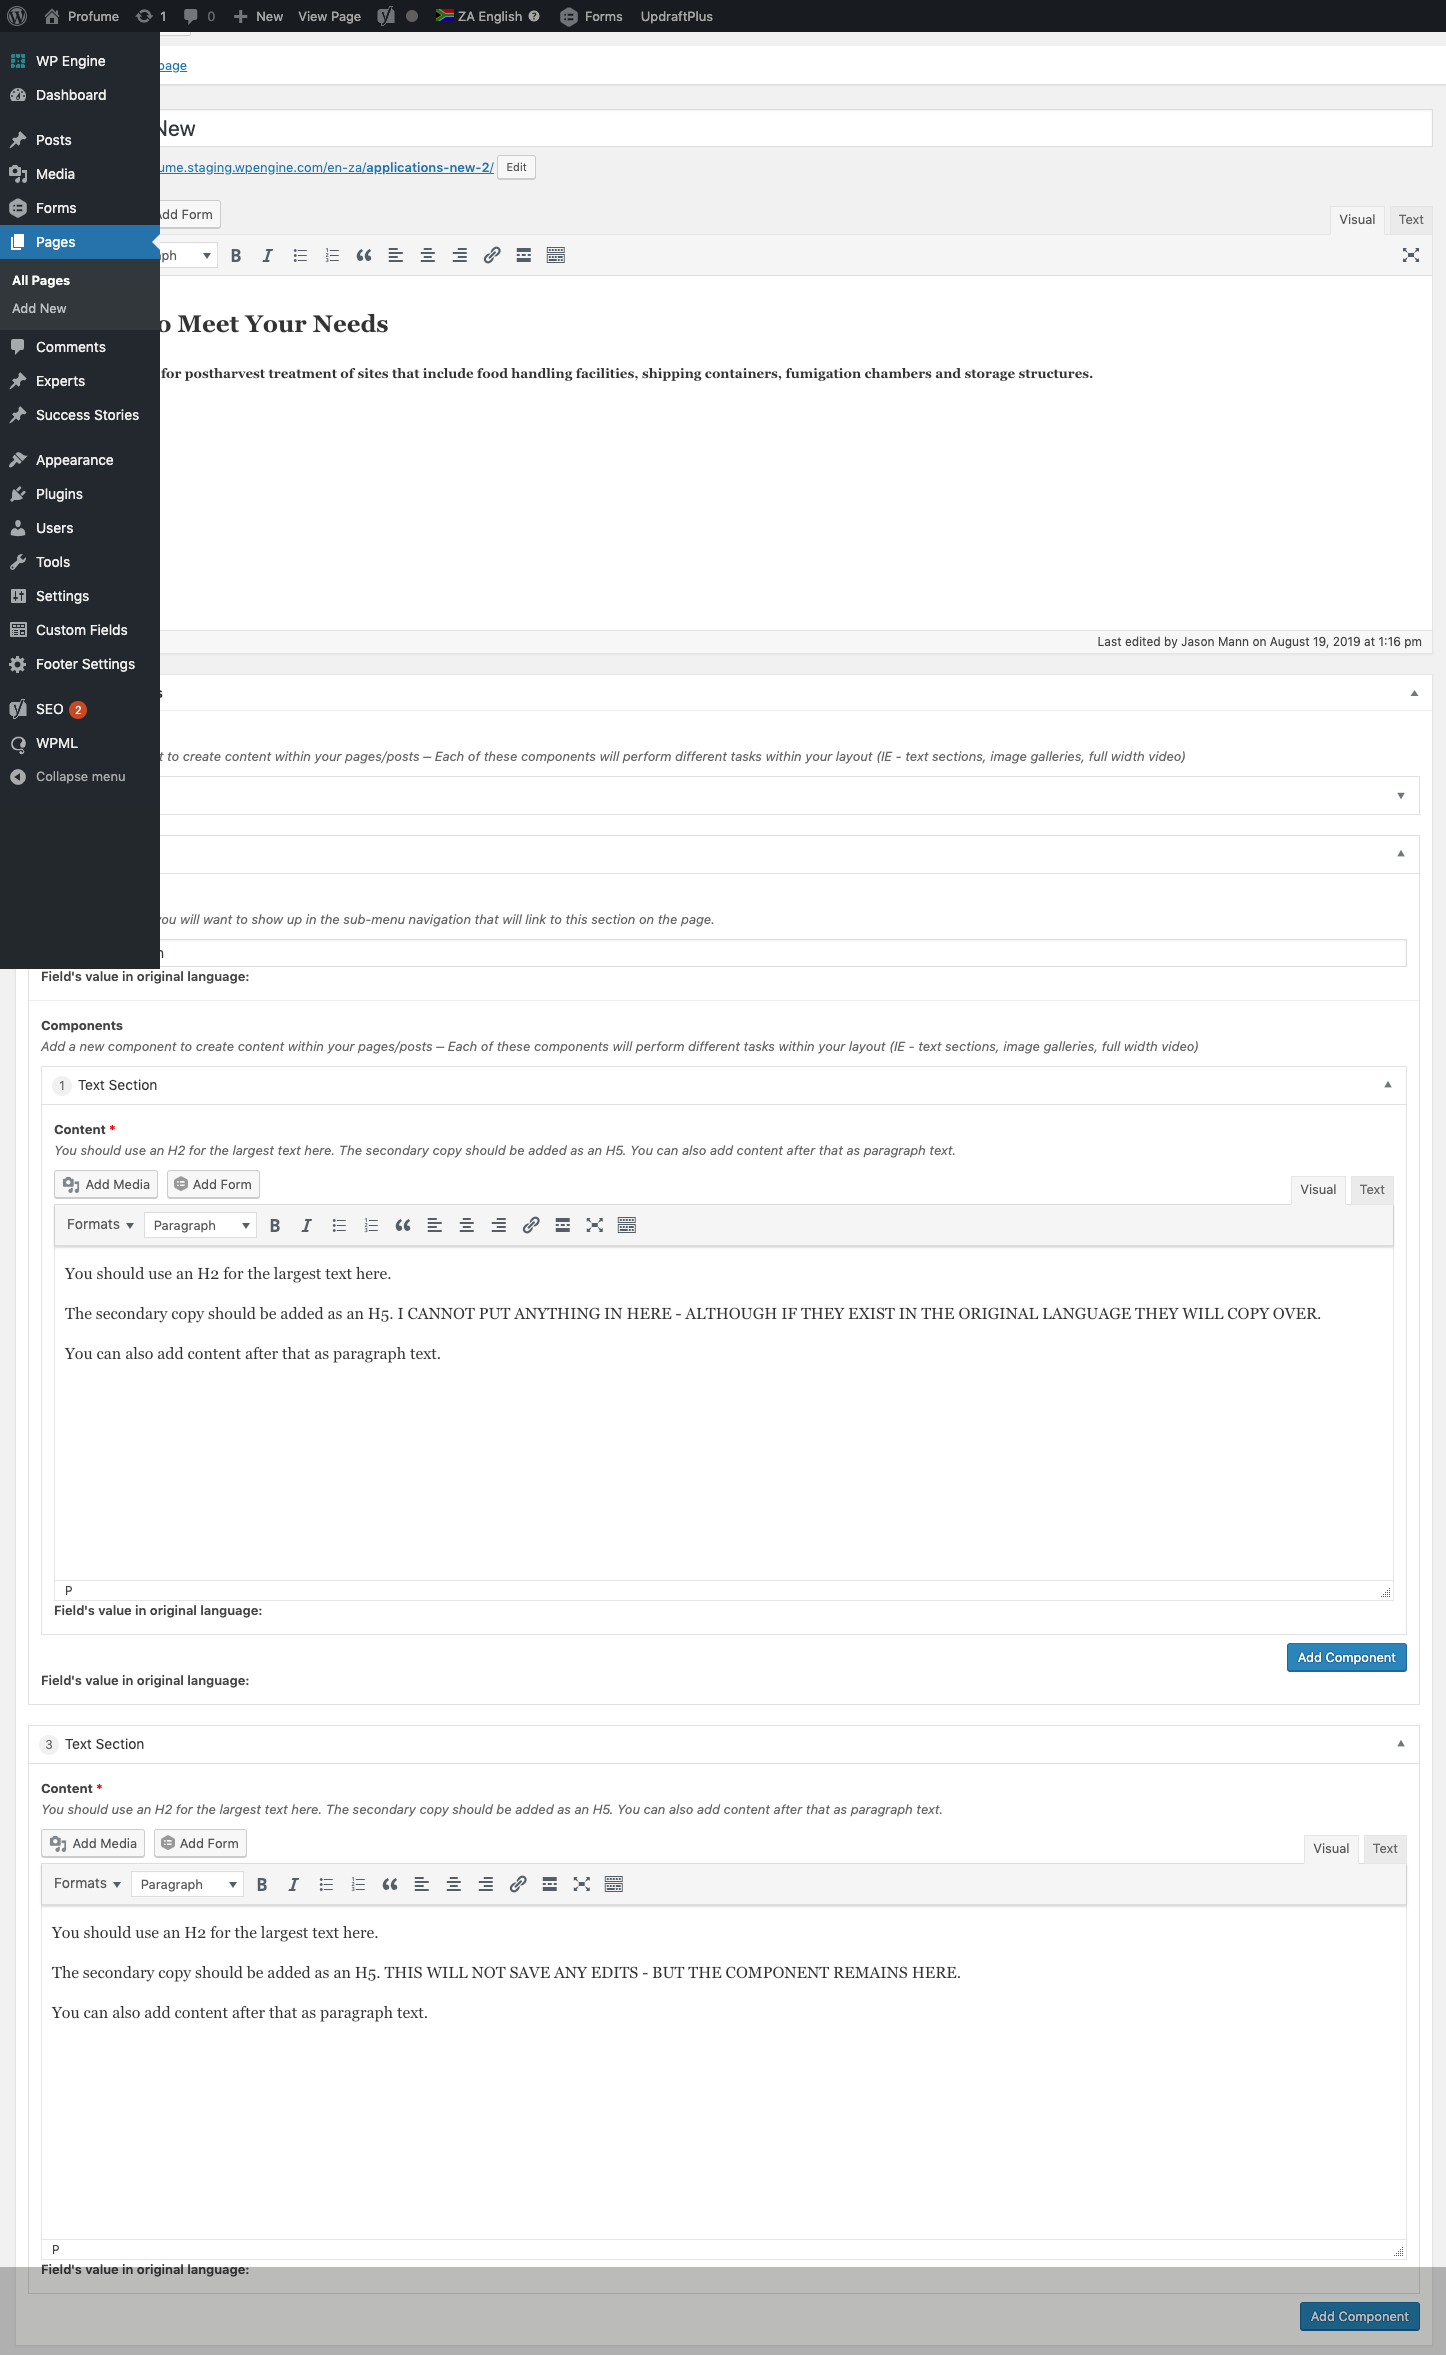 AwesomeScreenshot-profume-staging-wpengine-wp-admin-post.php-2019-08-19_8_22.png